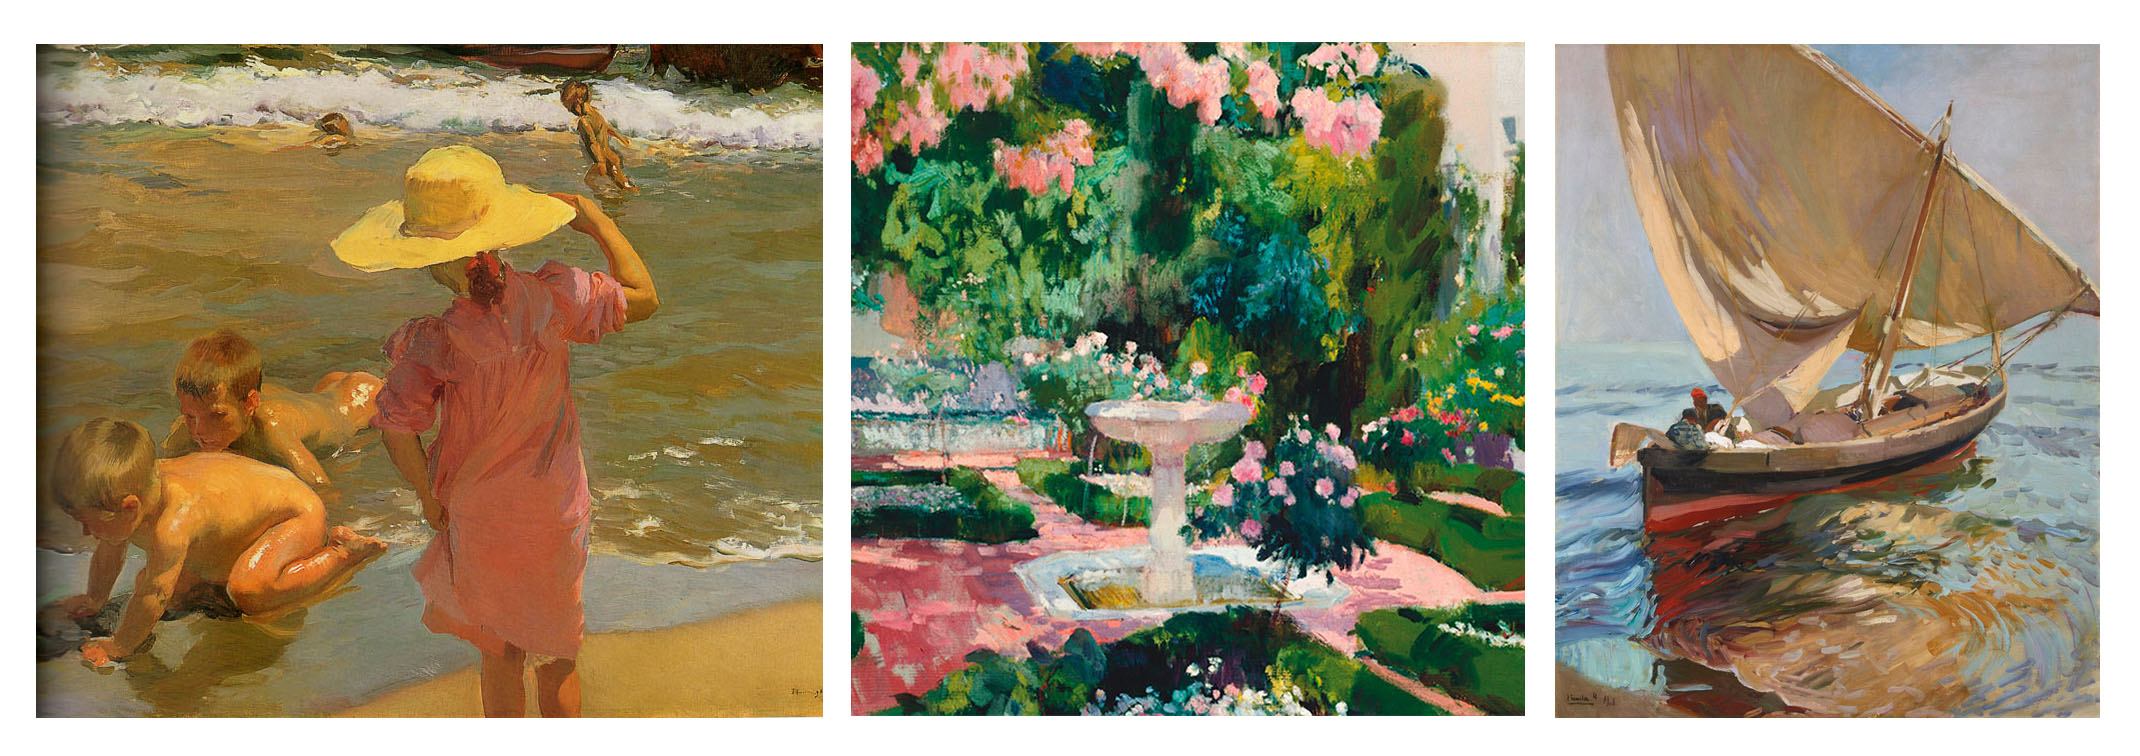 Paintings by Joaquin Sorolla